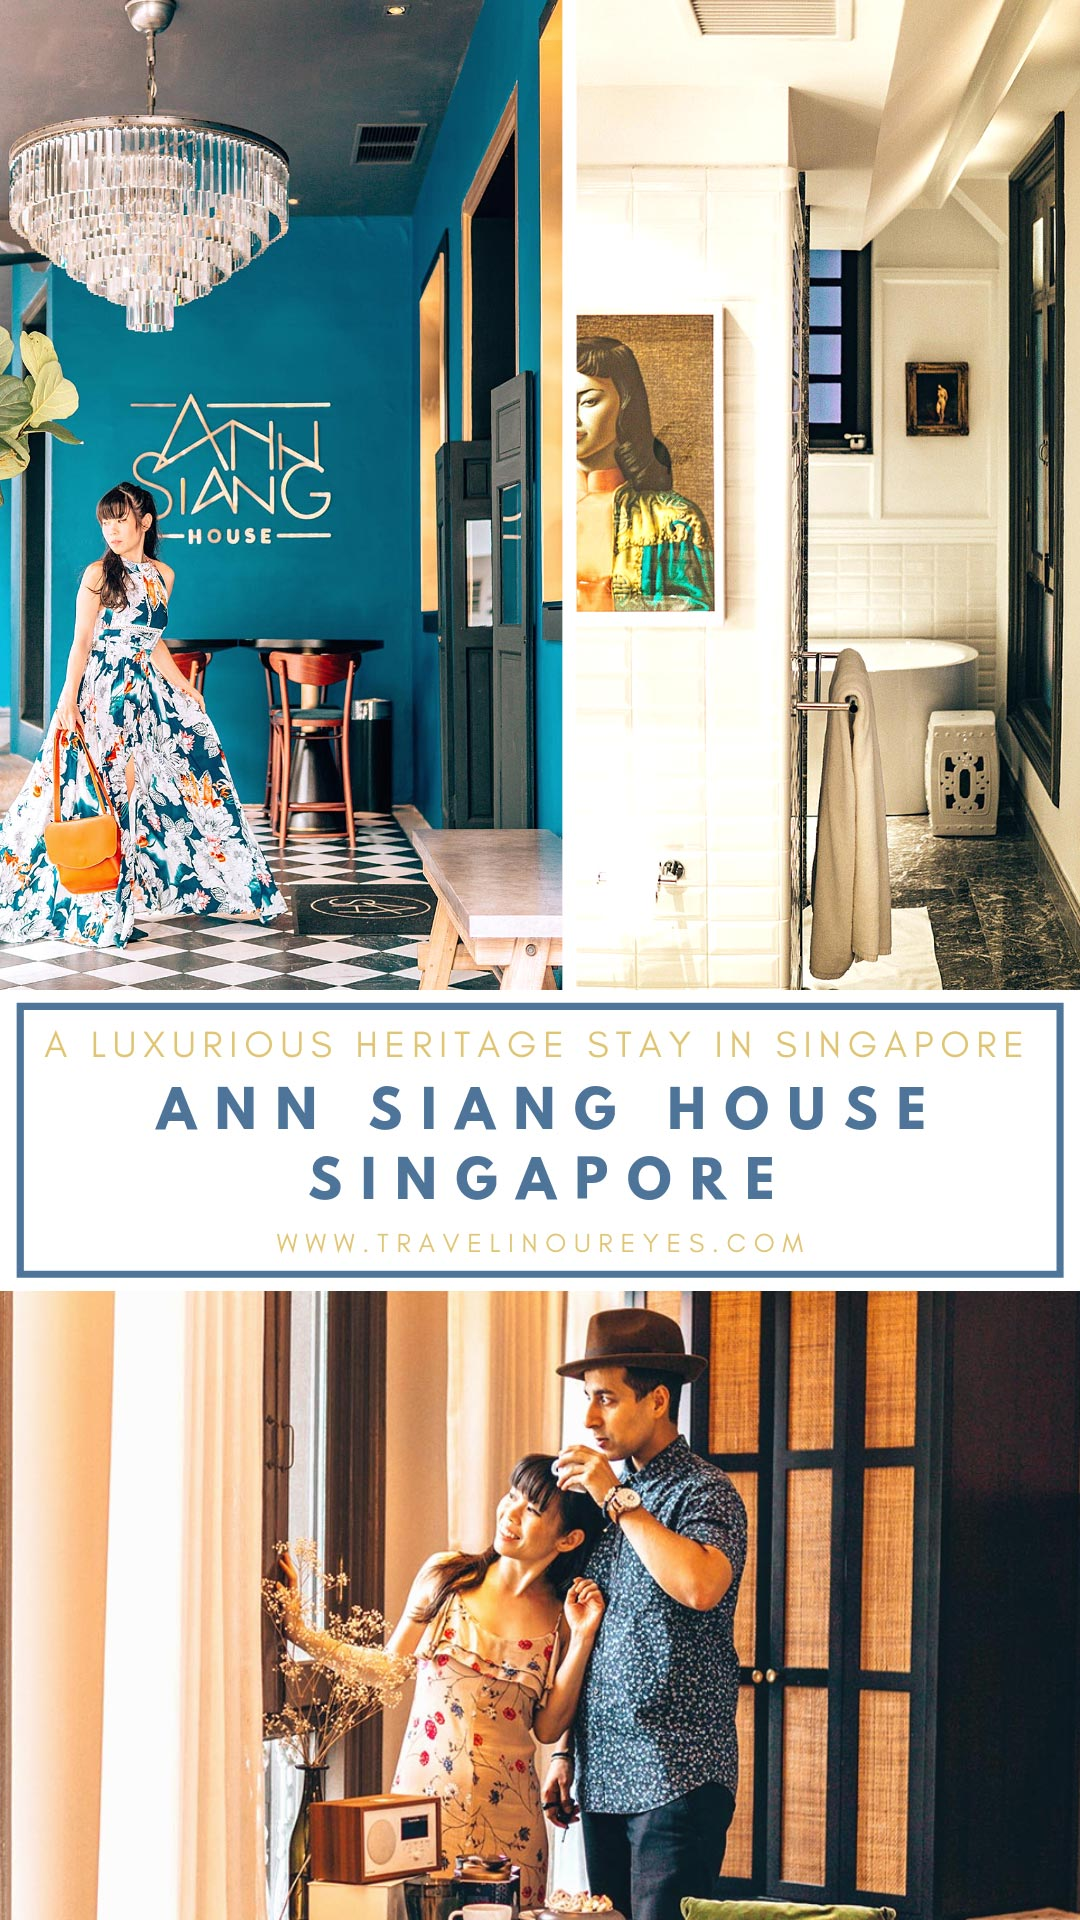 Ann Siang House: A Romantic, Luxurious Heritage Stay in Singapore